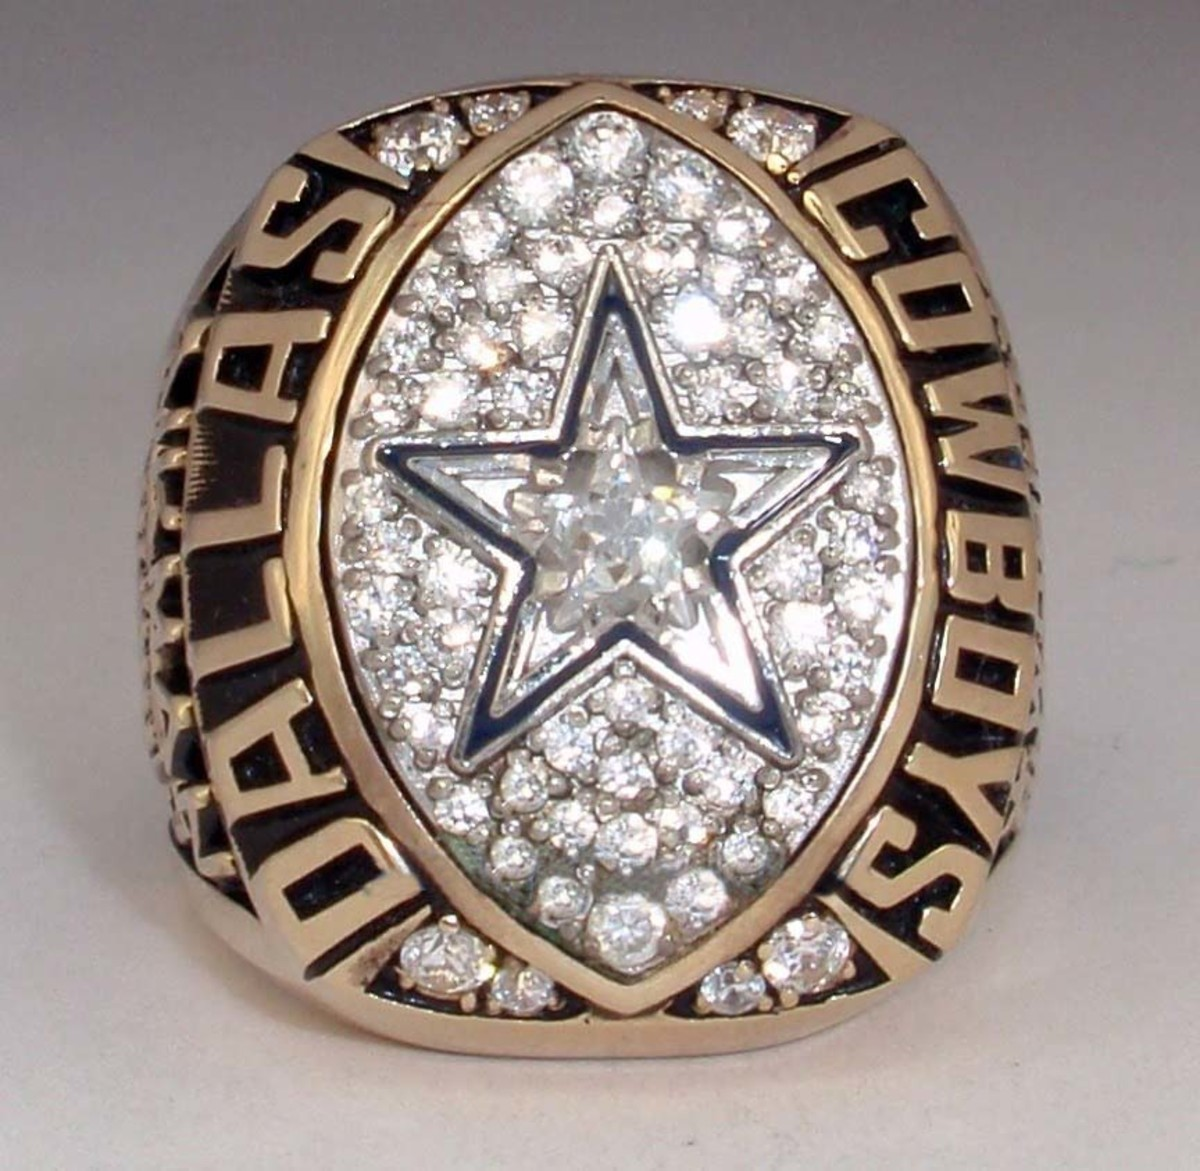 Dallas Cowboys 1993